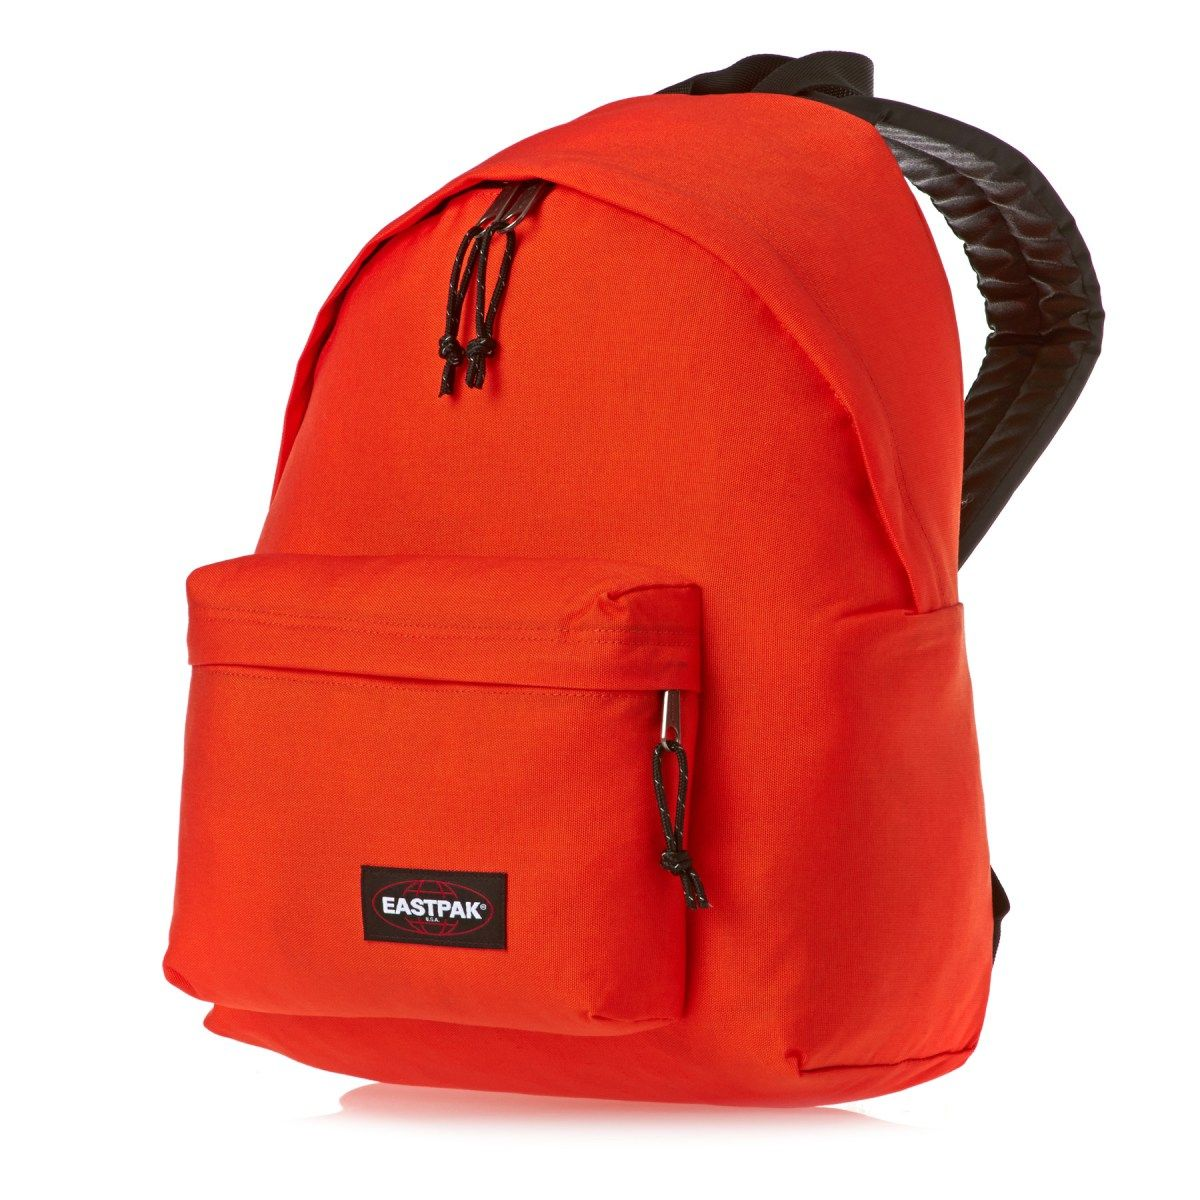 432c334a0963 Women s Eastpak Backpacks - Eastpak Padded Pak r Backpack - Fresh Juice